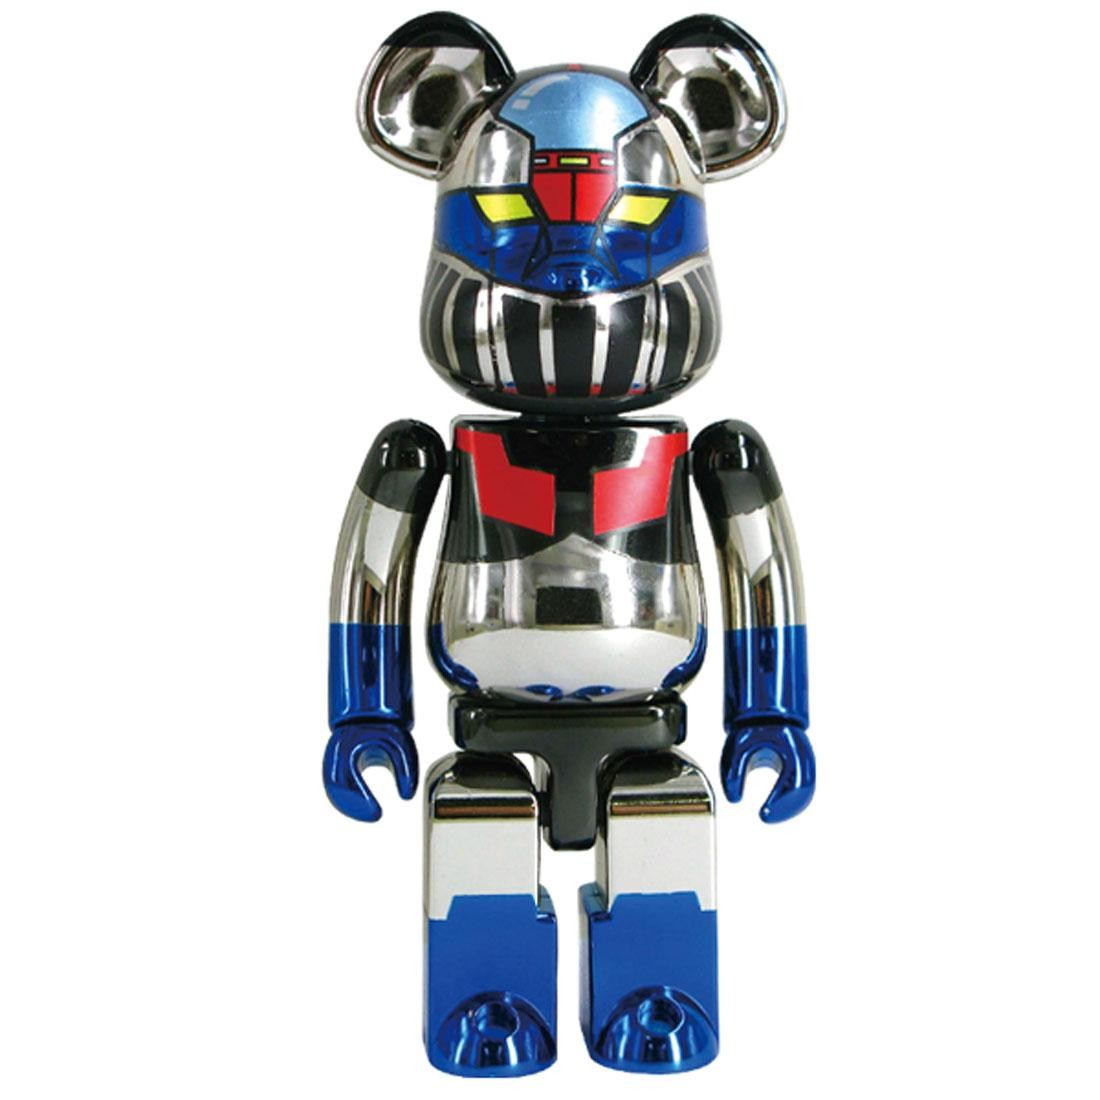 Medicom Mazinger Z 200% Chogokin Bearbrick Super Alloy (chrome)